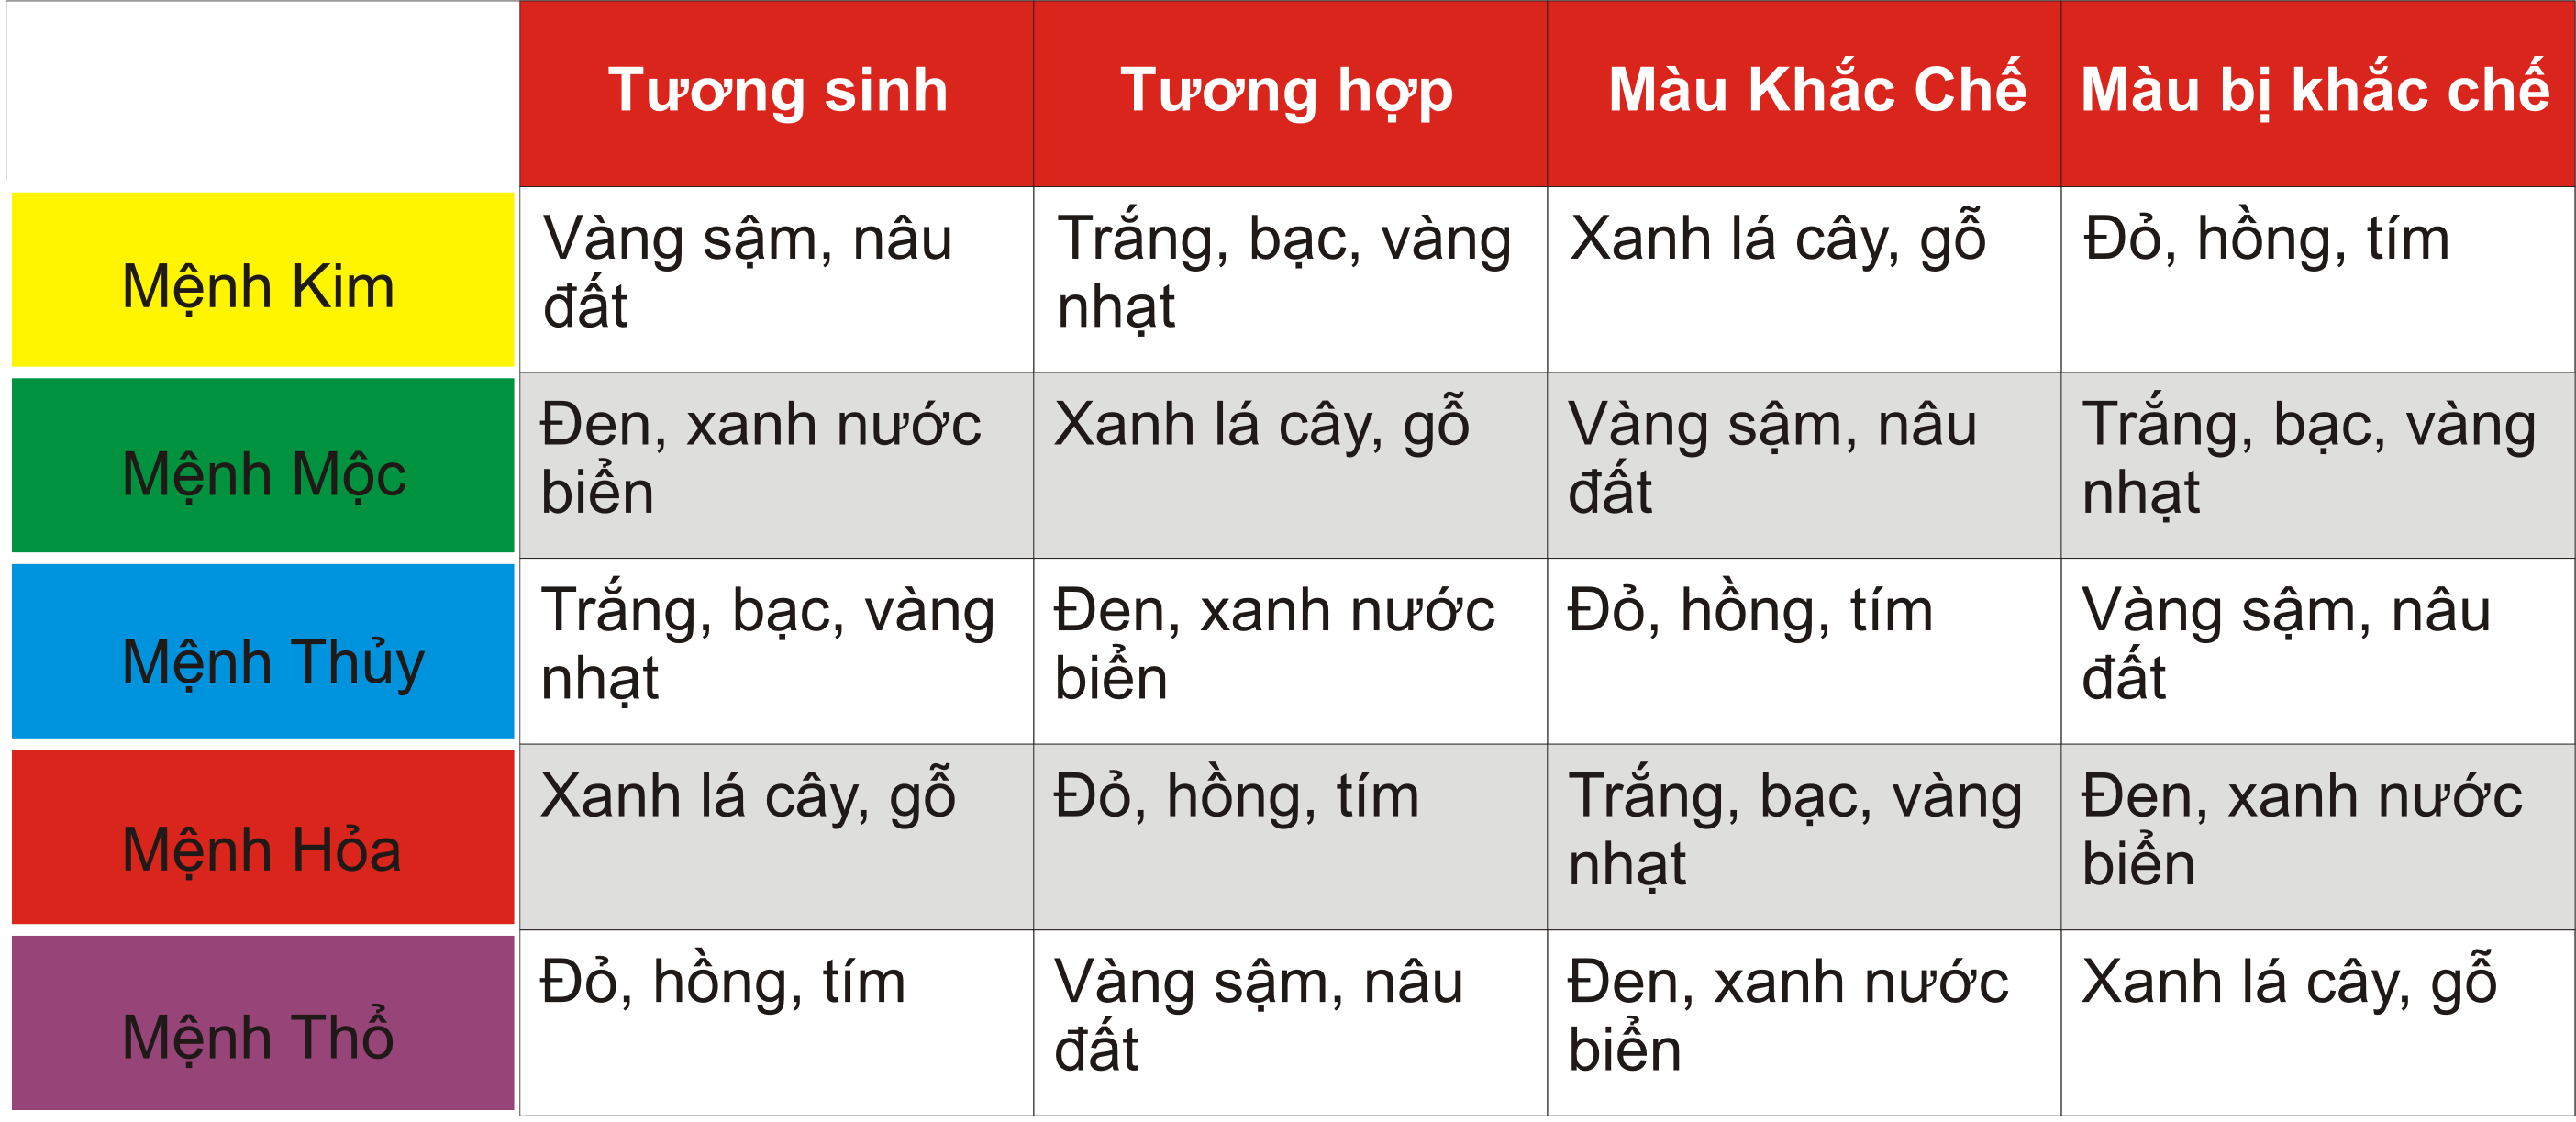 vong-tay-phong-thuy-theo-menh